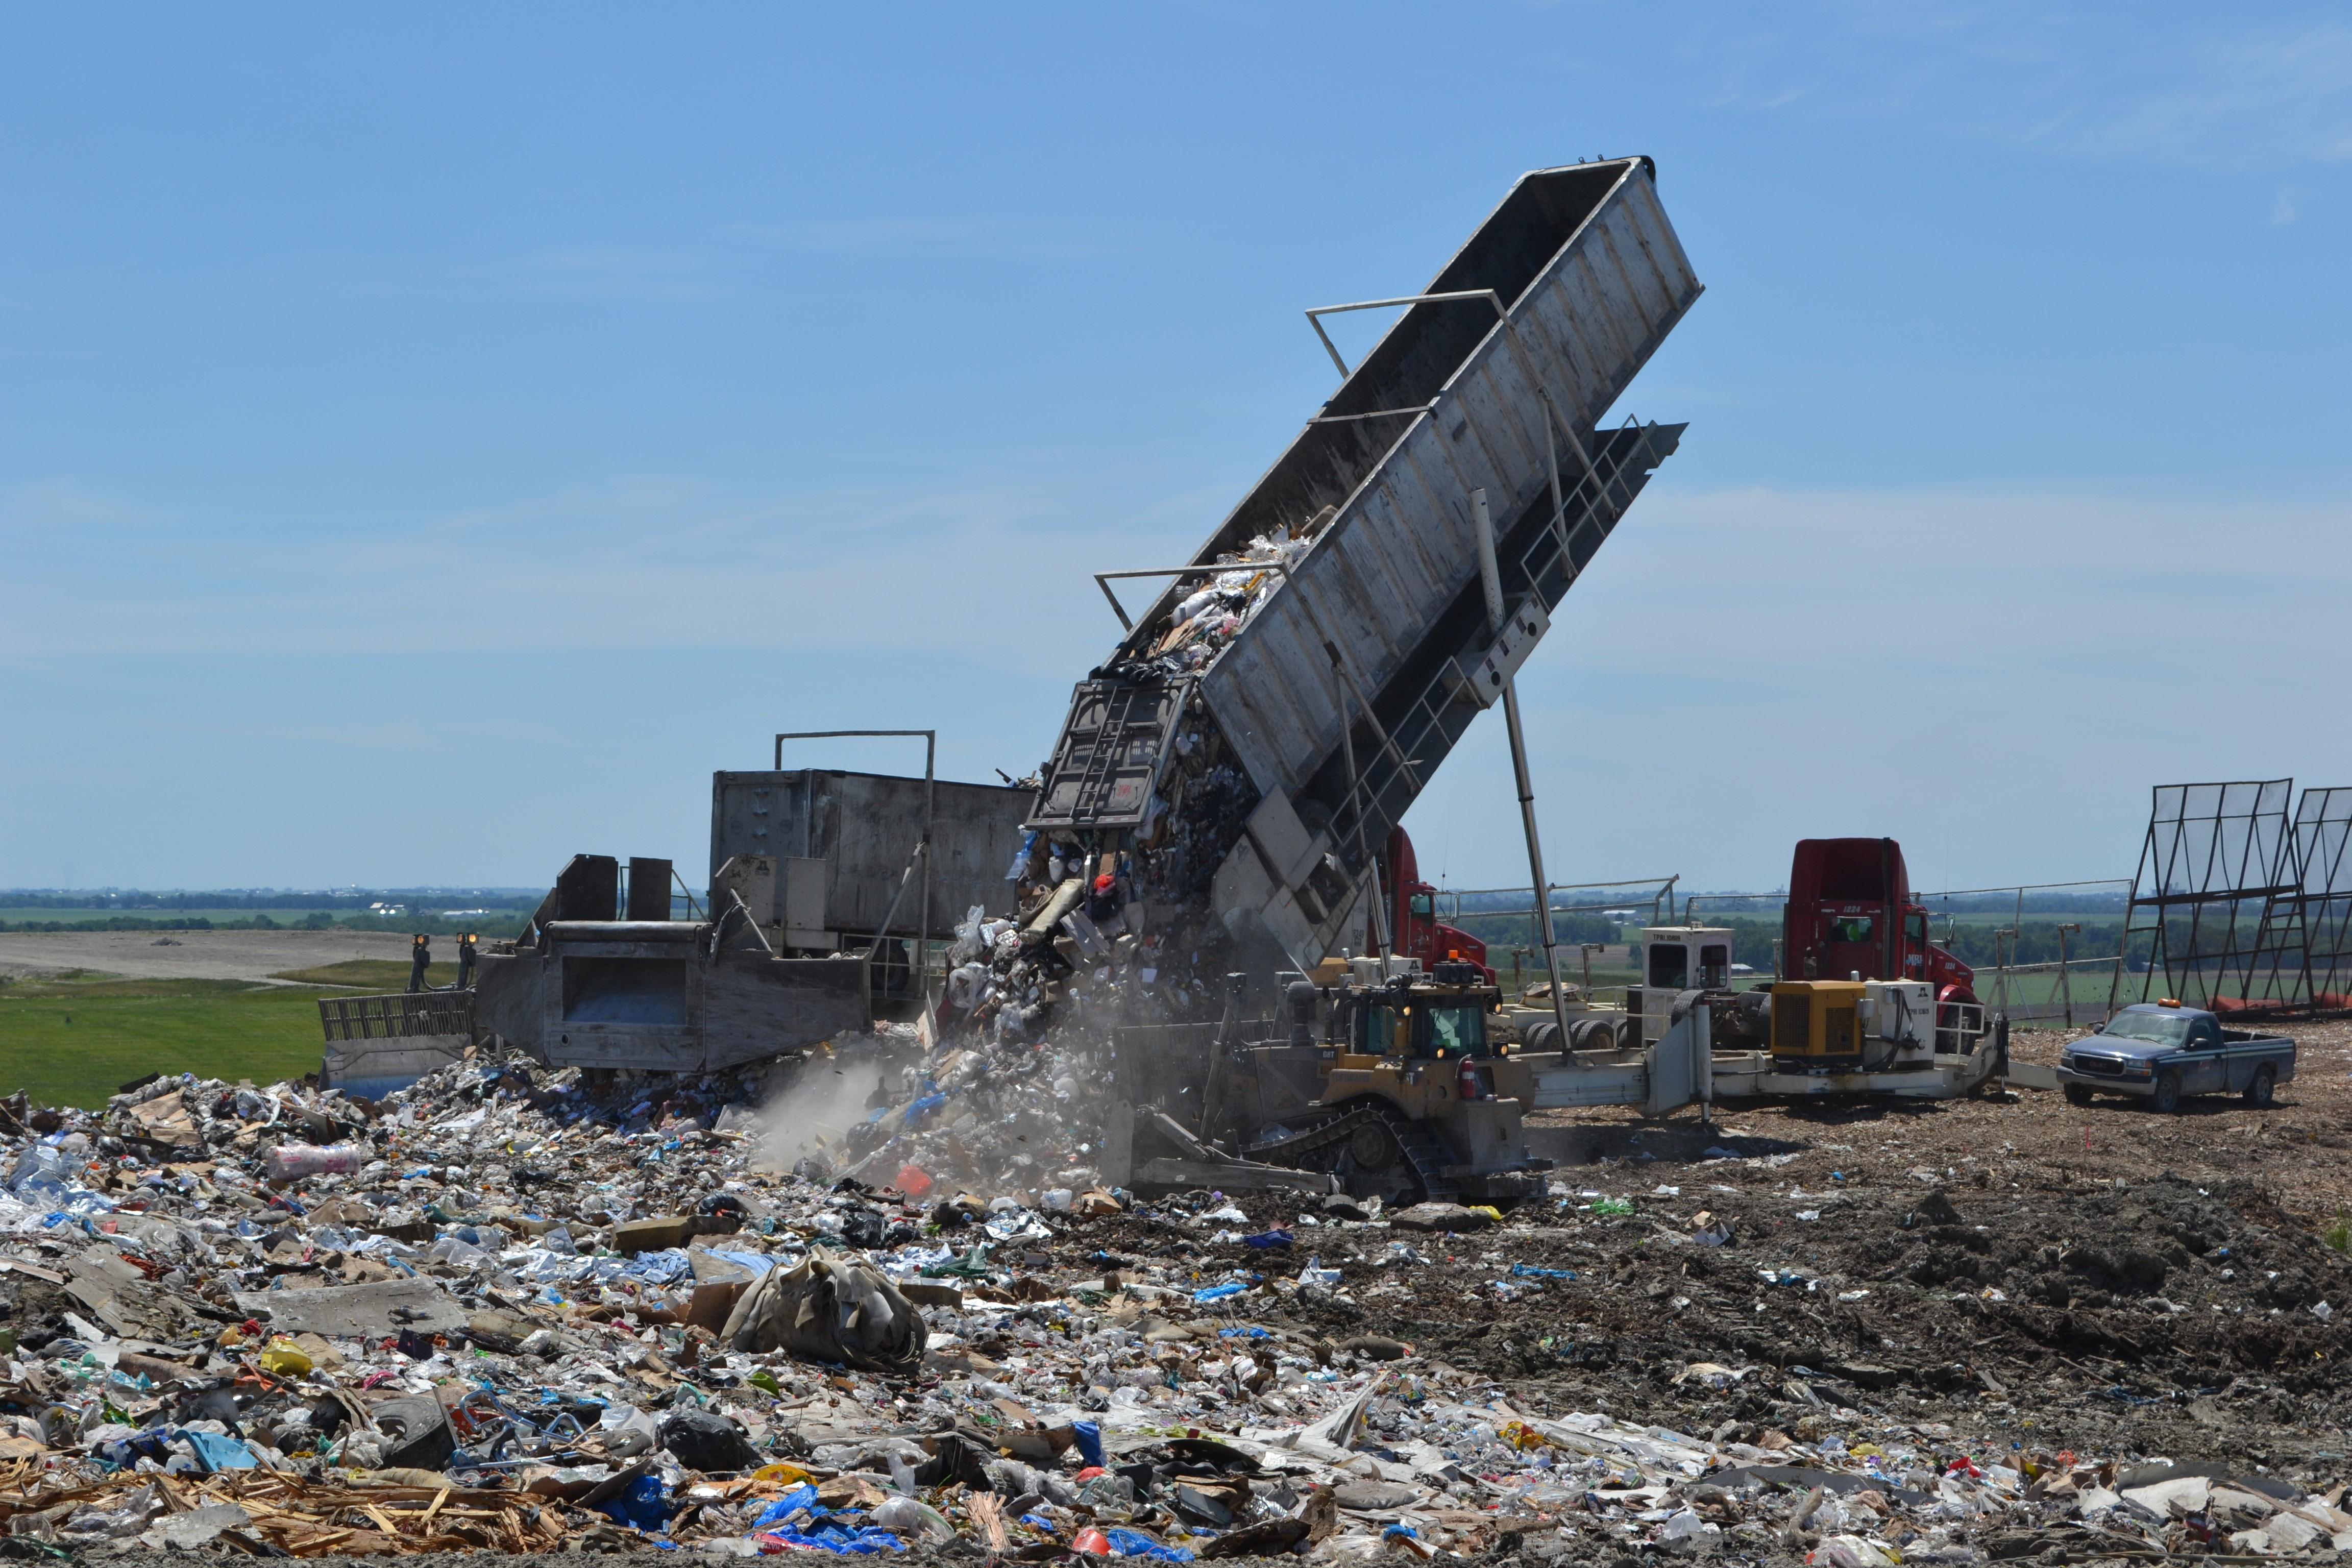 Bill Janes can tell you with surprising accuracy where your trash was dumped at his landfill.